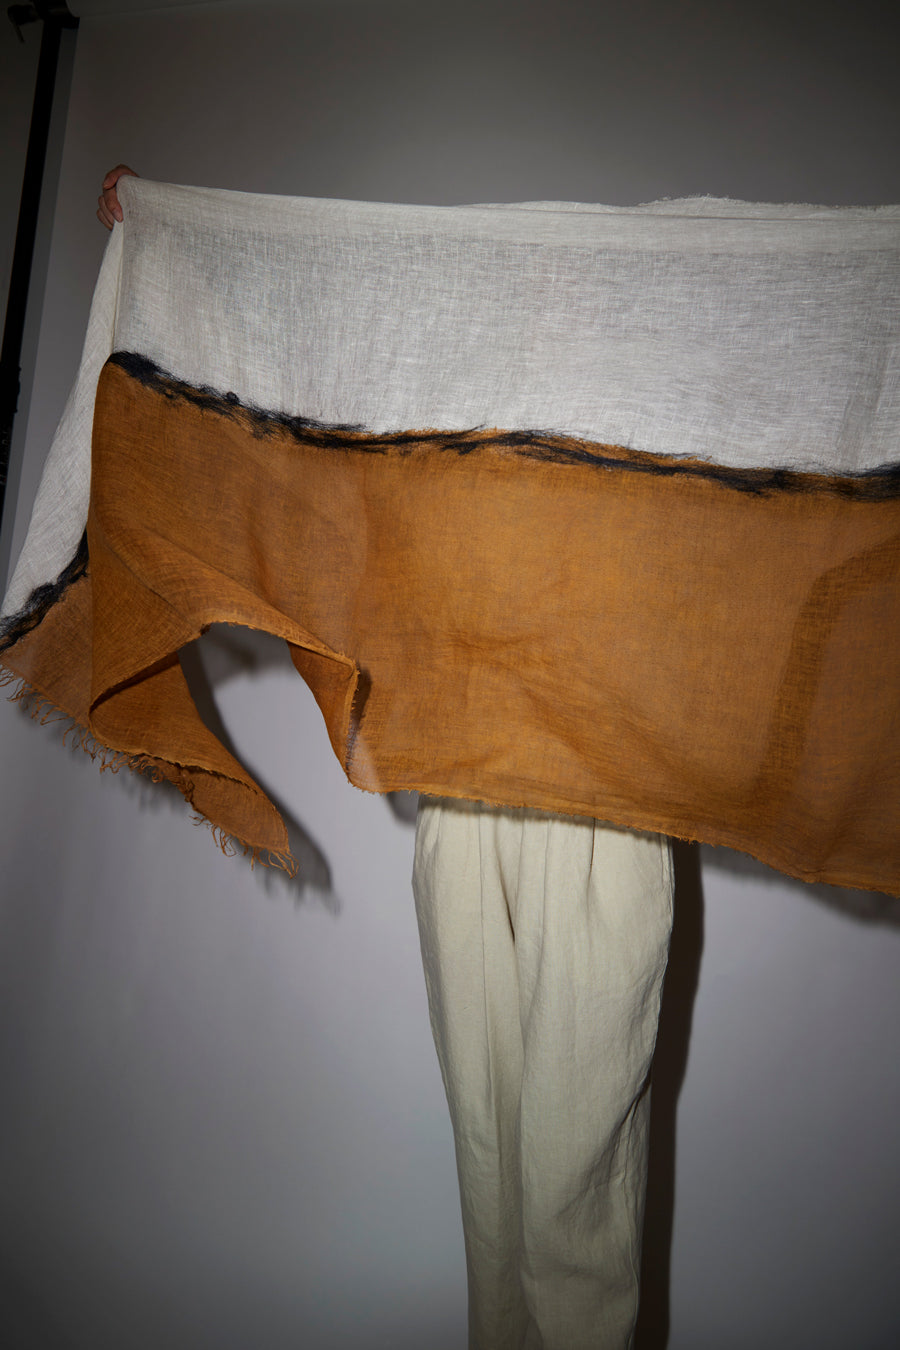 Exquisite J Painted Scarf in Cream and Tobacco